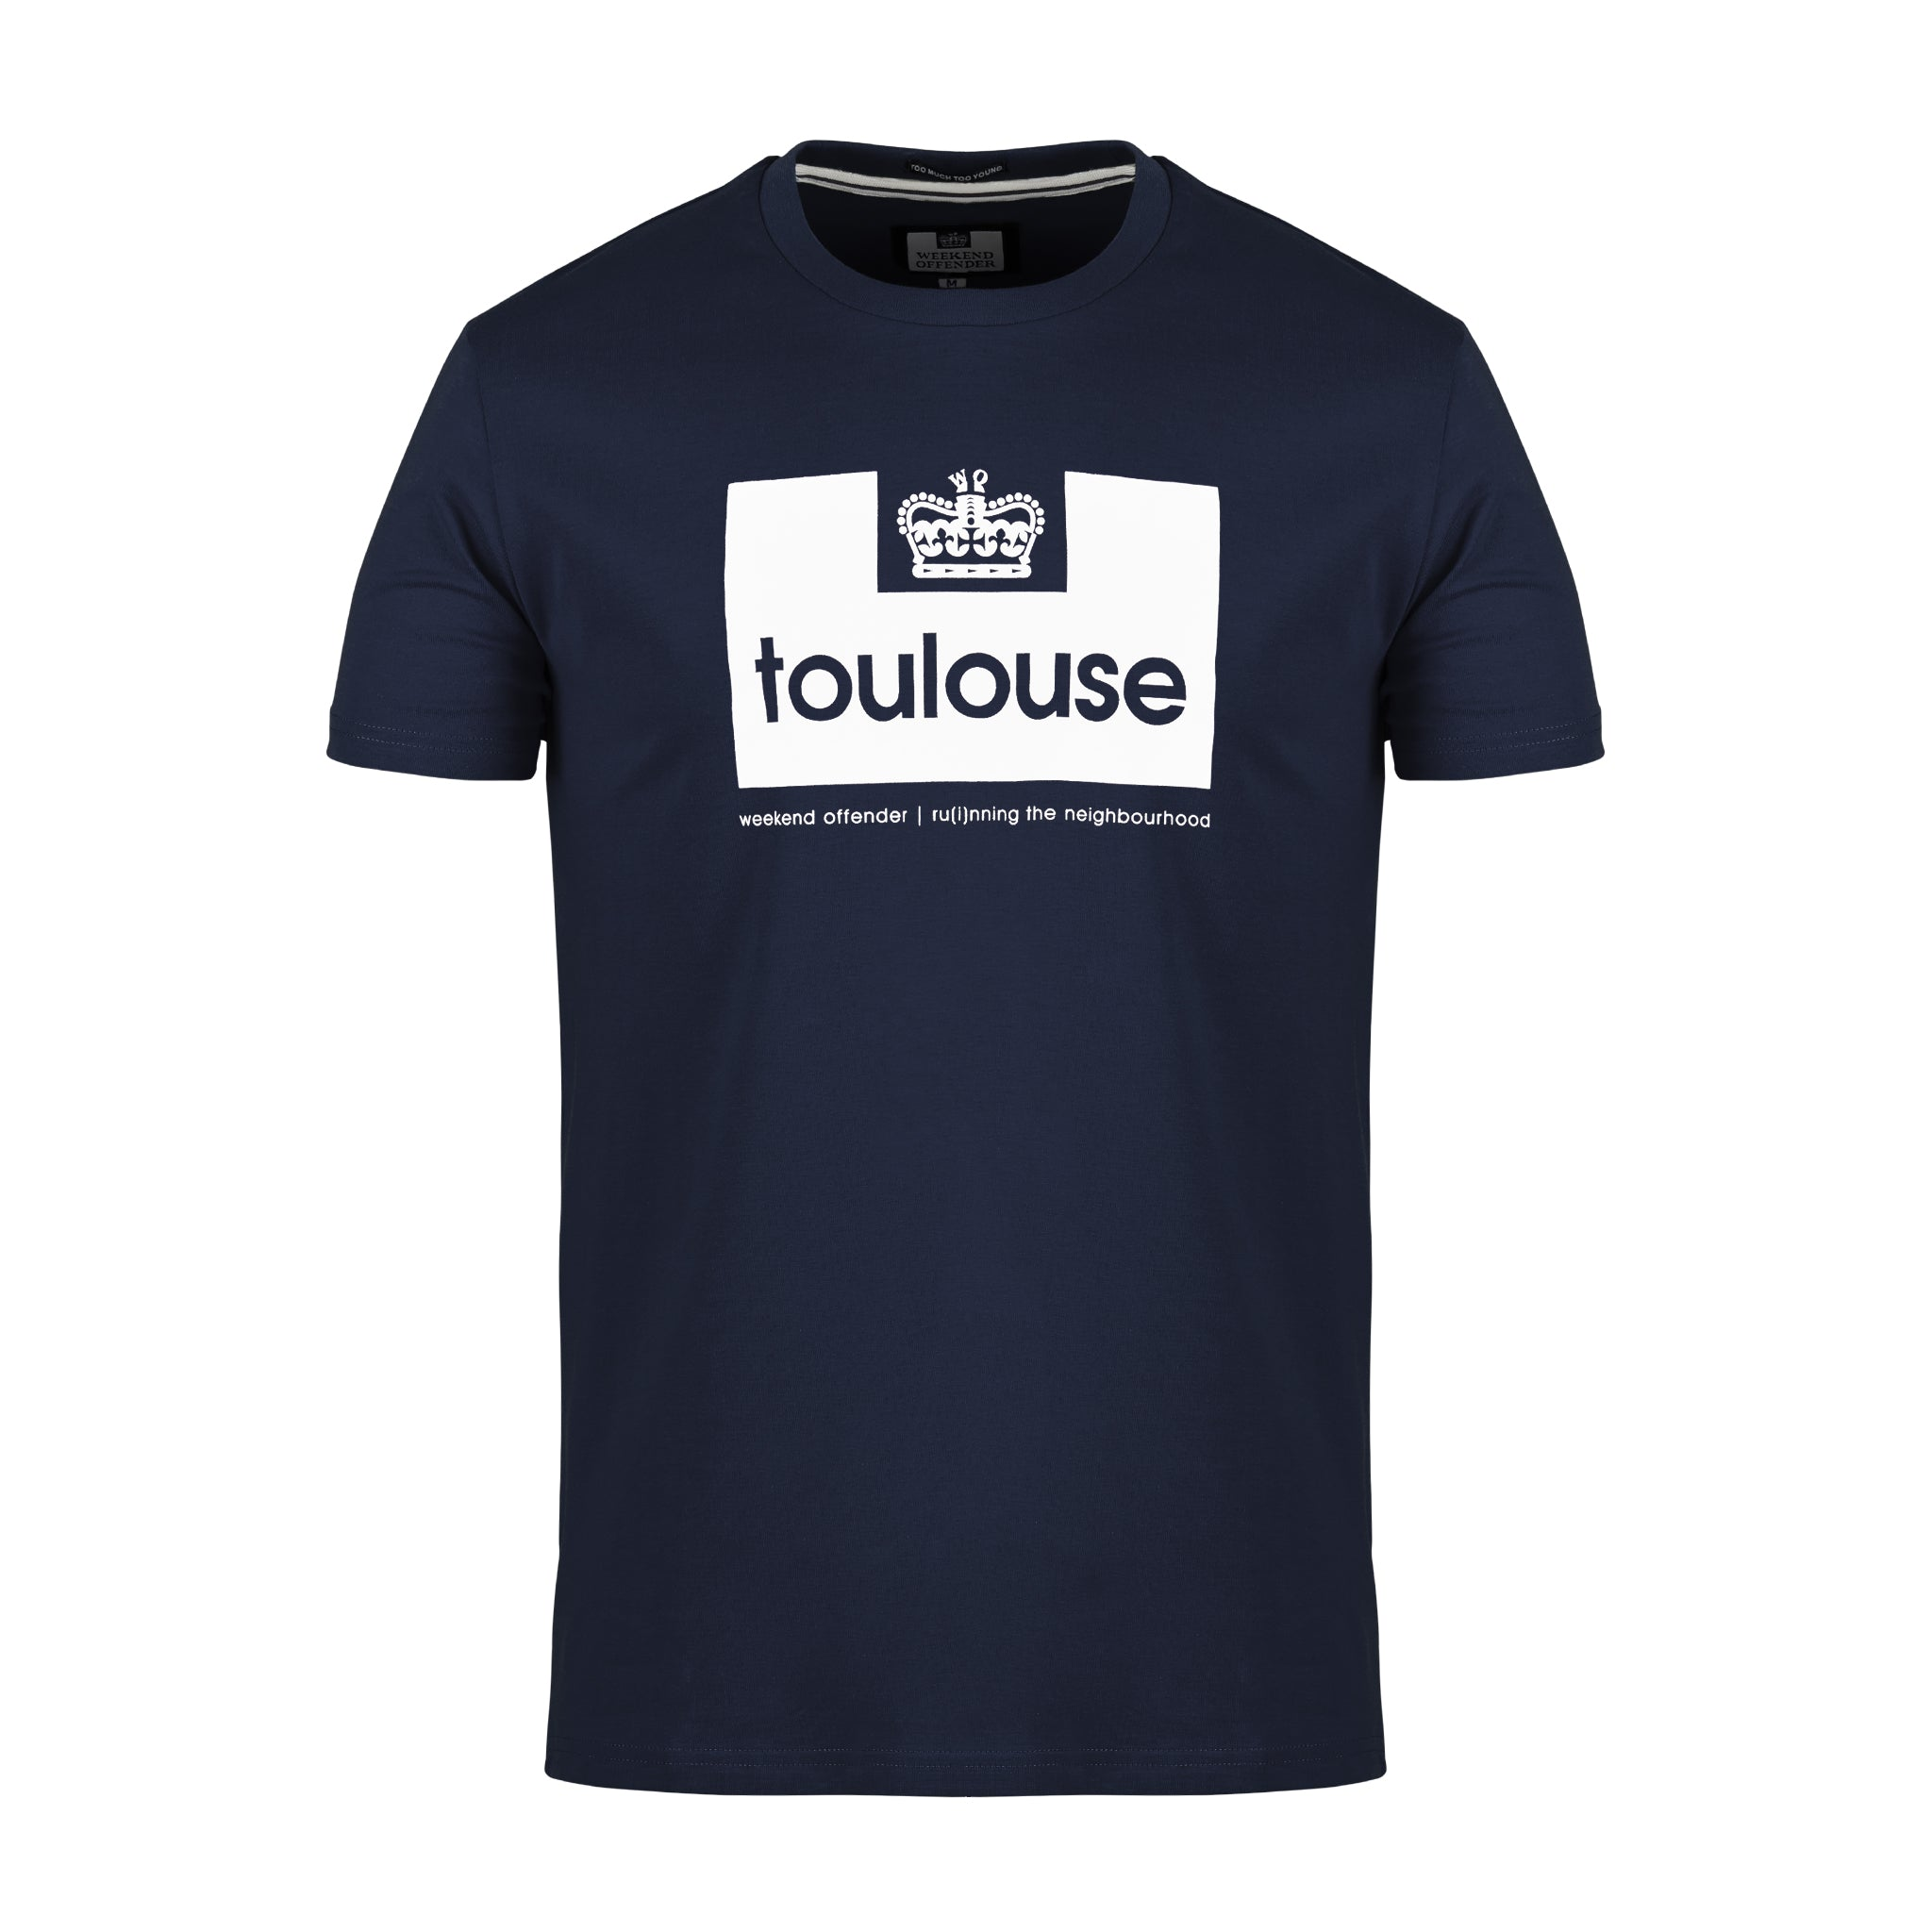 City Series 2 Toulouse Navy